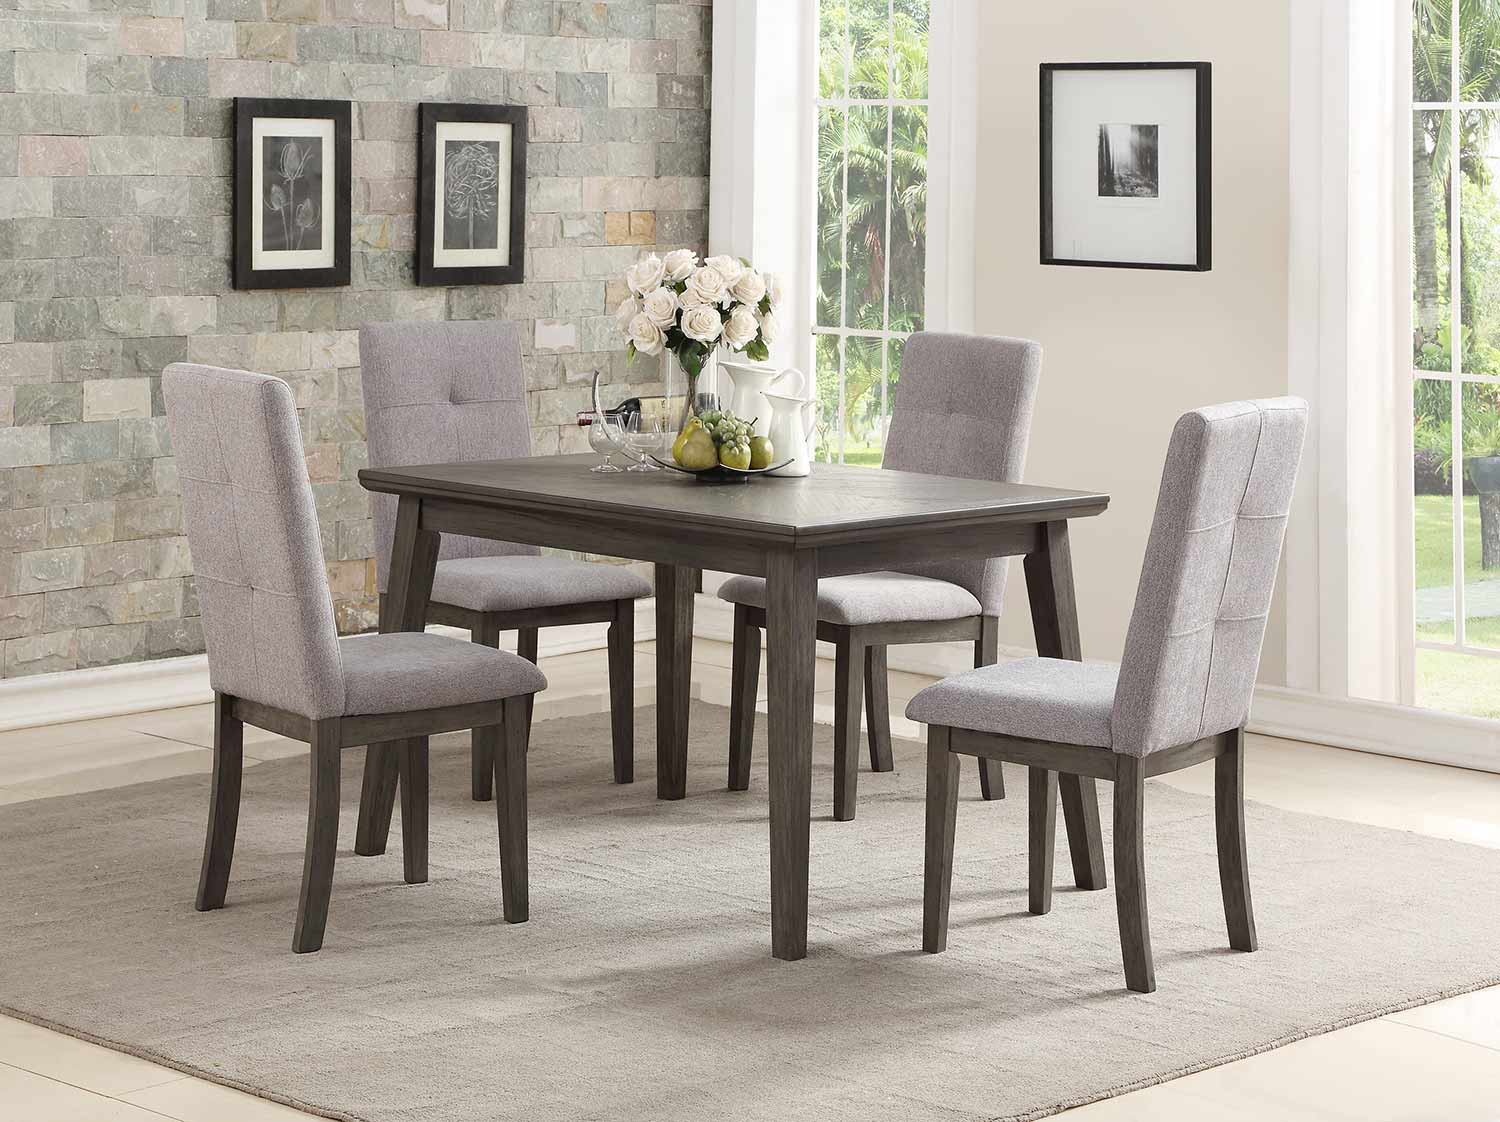 Homelegance University Dining Set - Gray